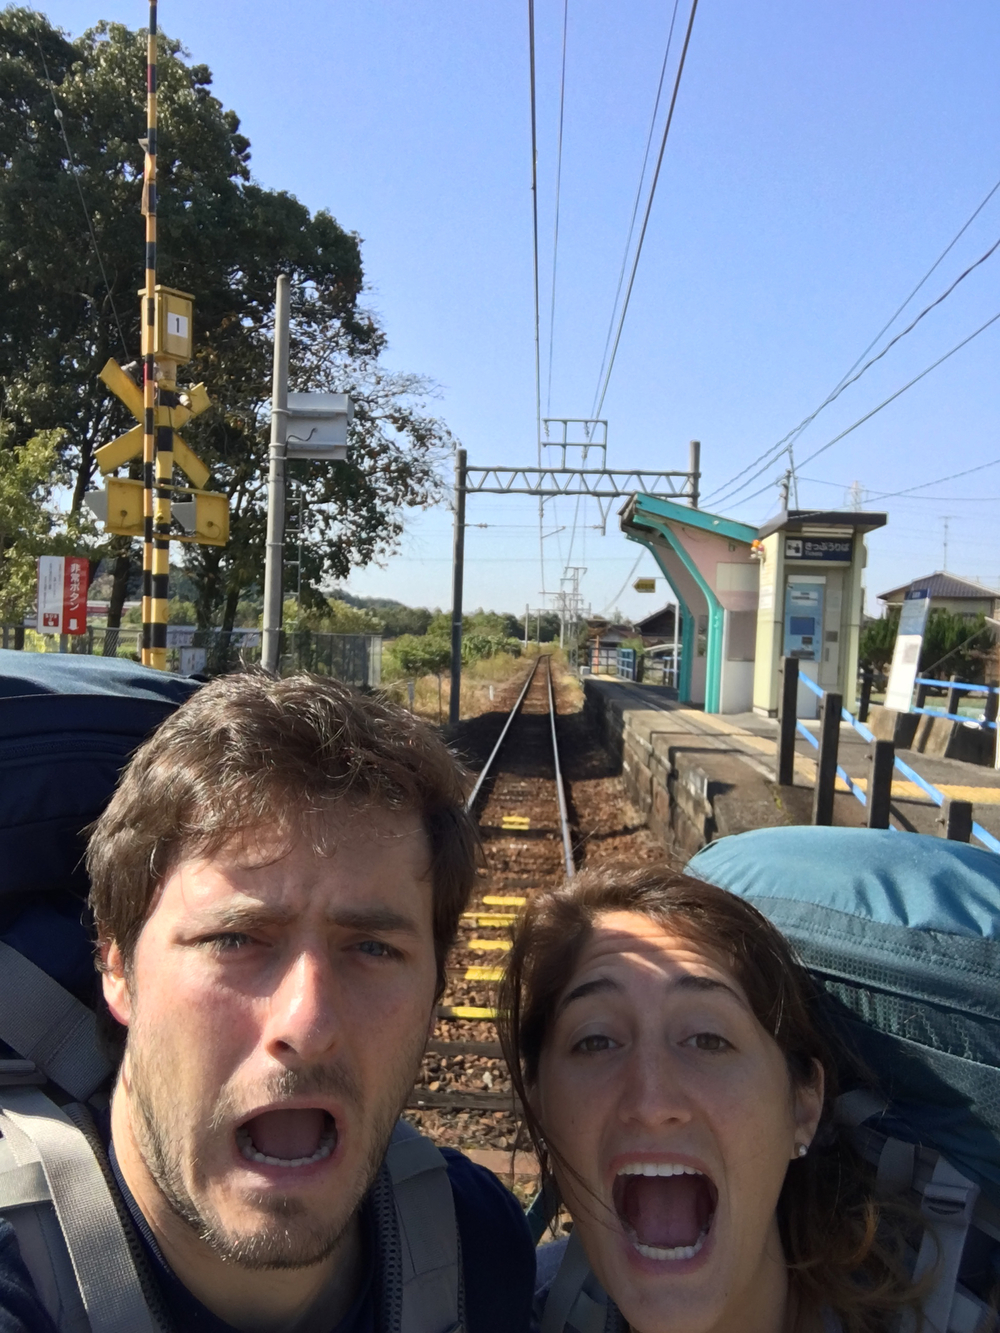 ZOMG we're on the train tracks!